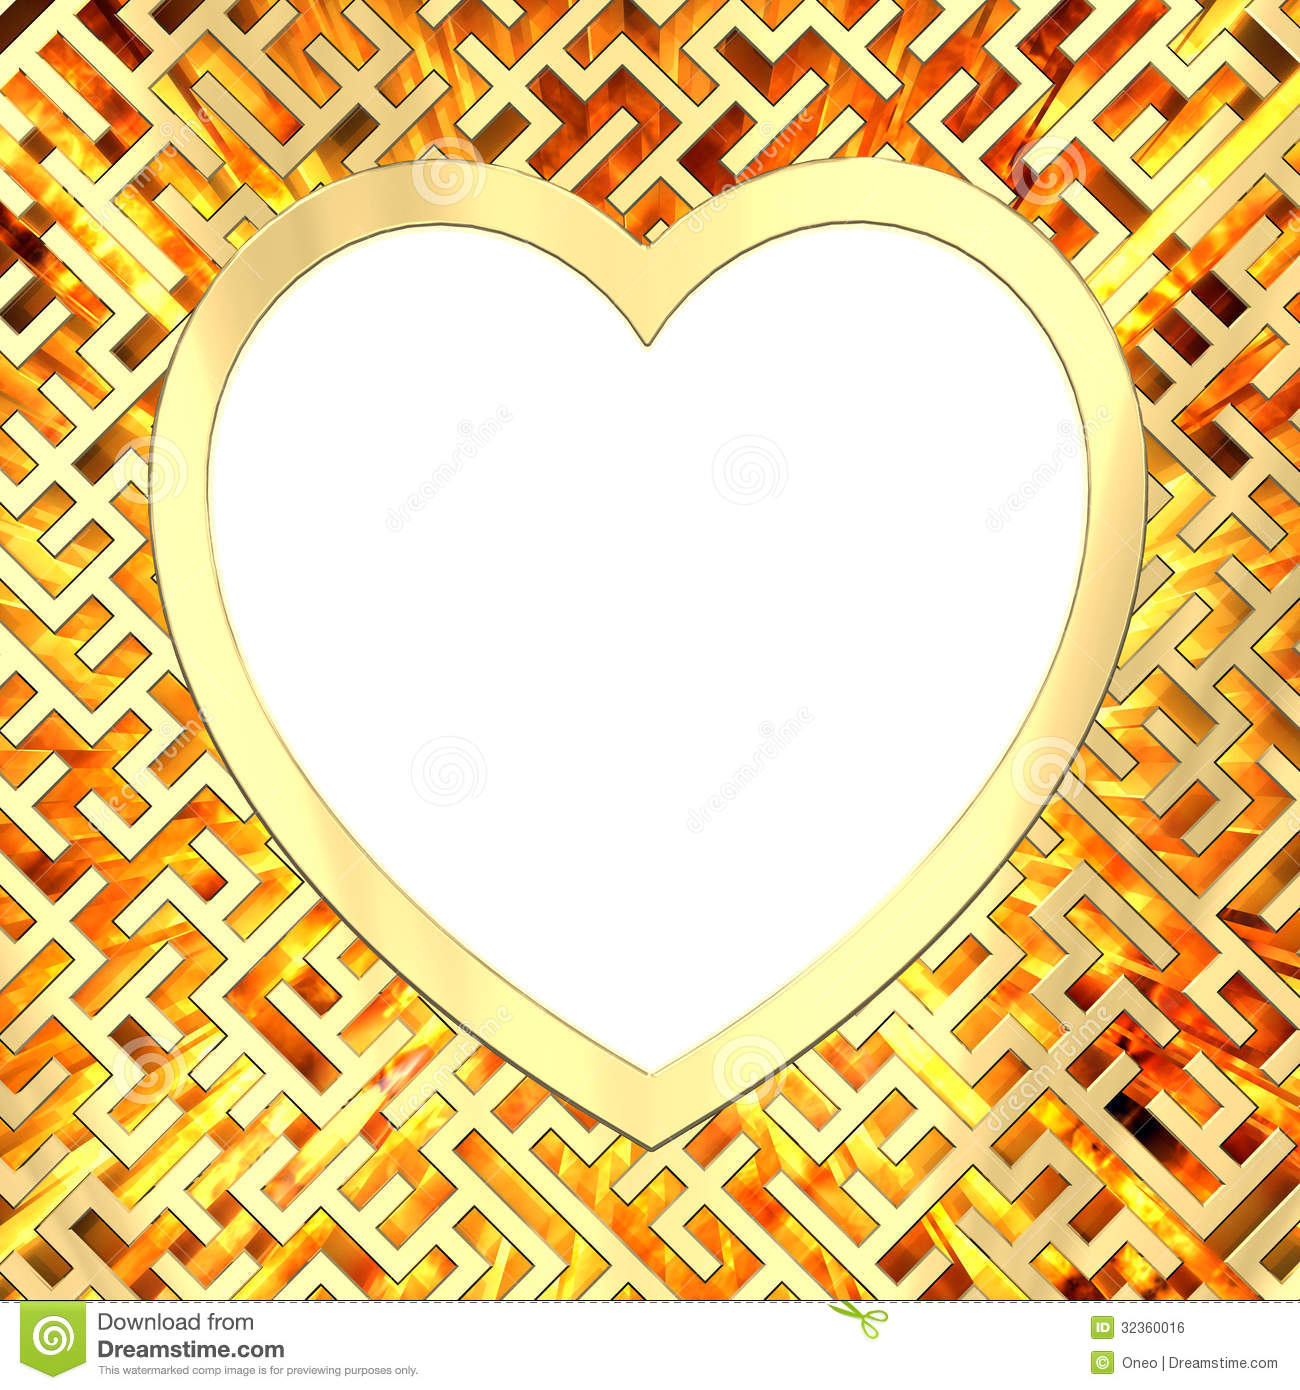 Blank Heart Shaped Frame On Maze Background With Flame Stock ...